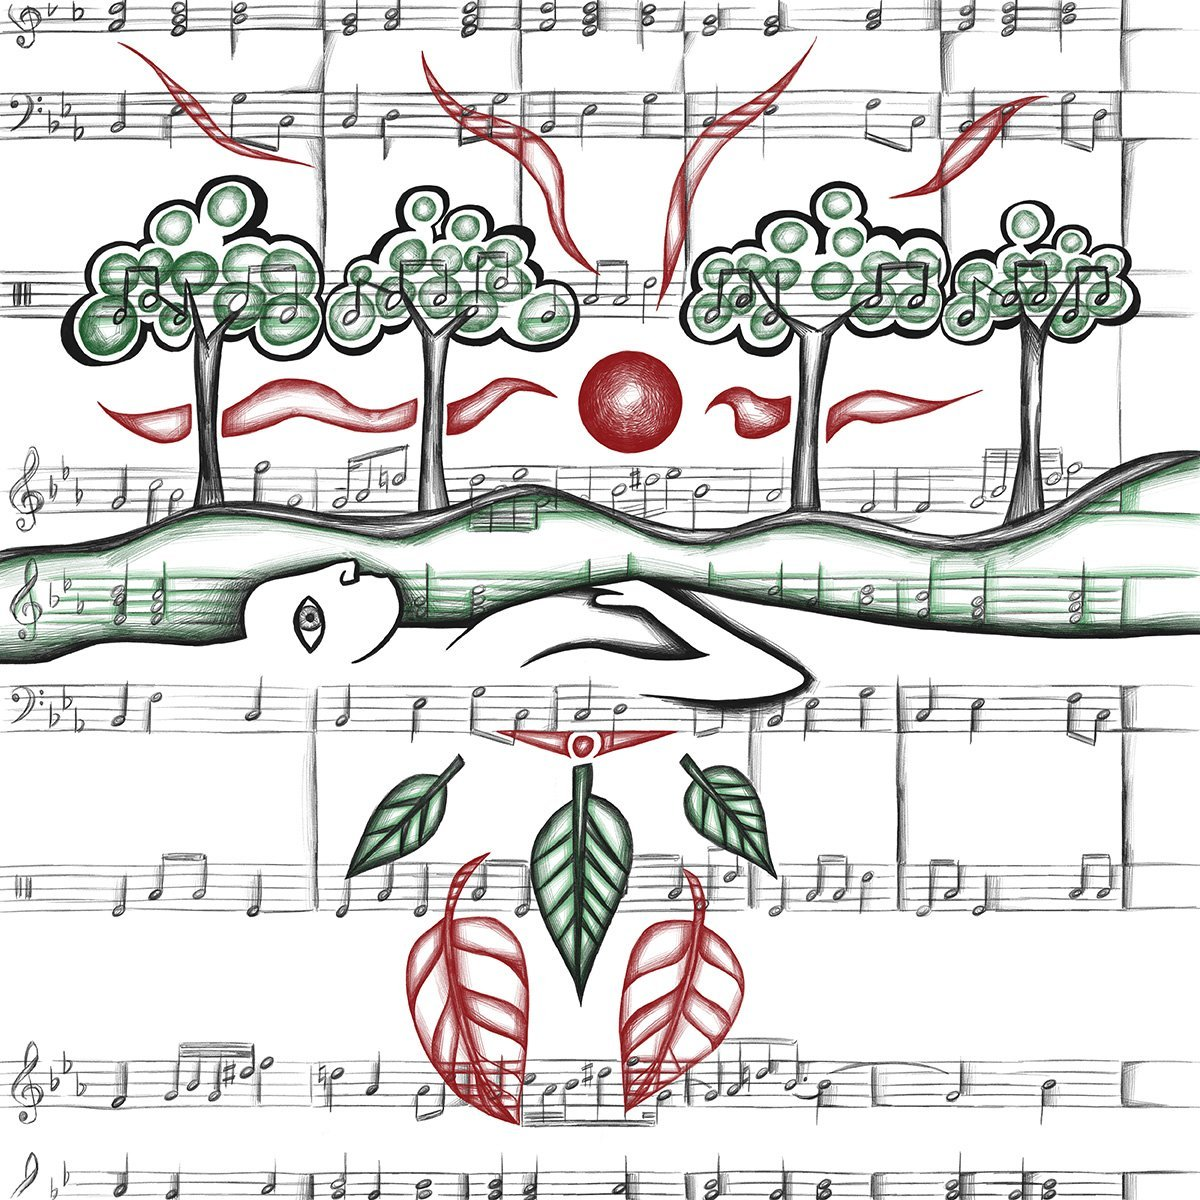 The image shows a piece of artwork by Jina Wallwork.It is a digital drawing of a person in nature surrounded by music. Stylistically it has links with expressionism.